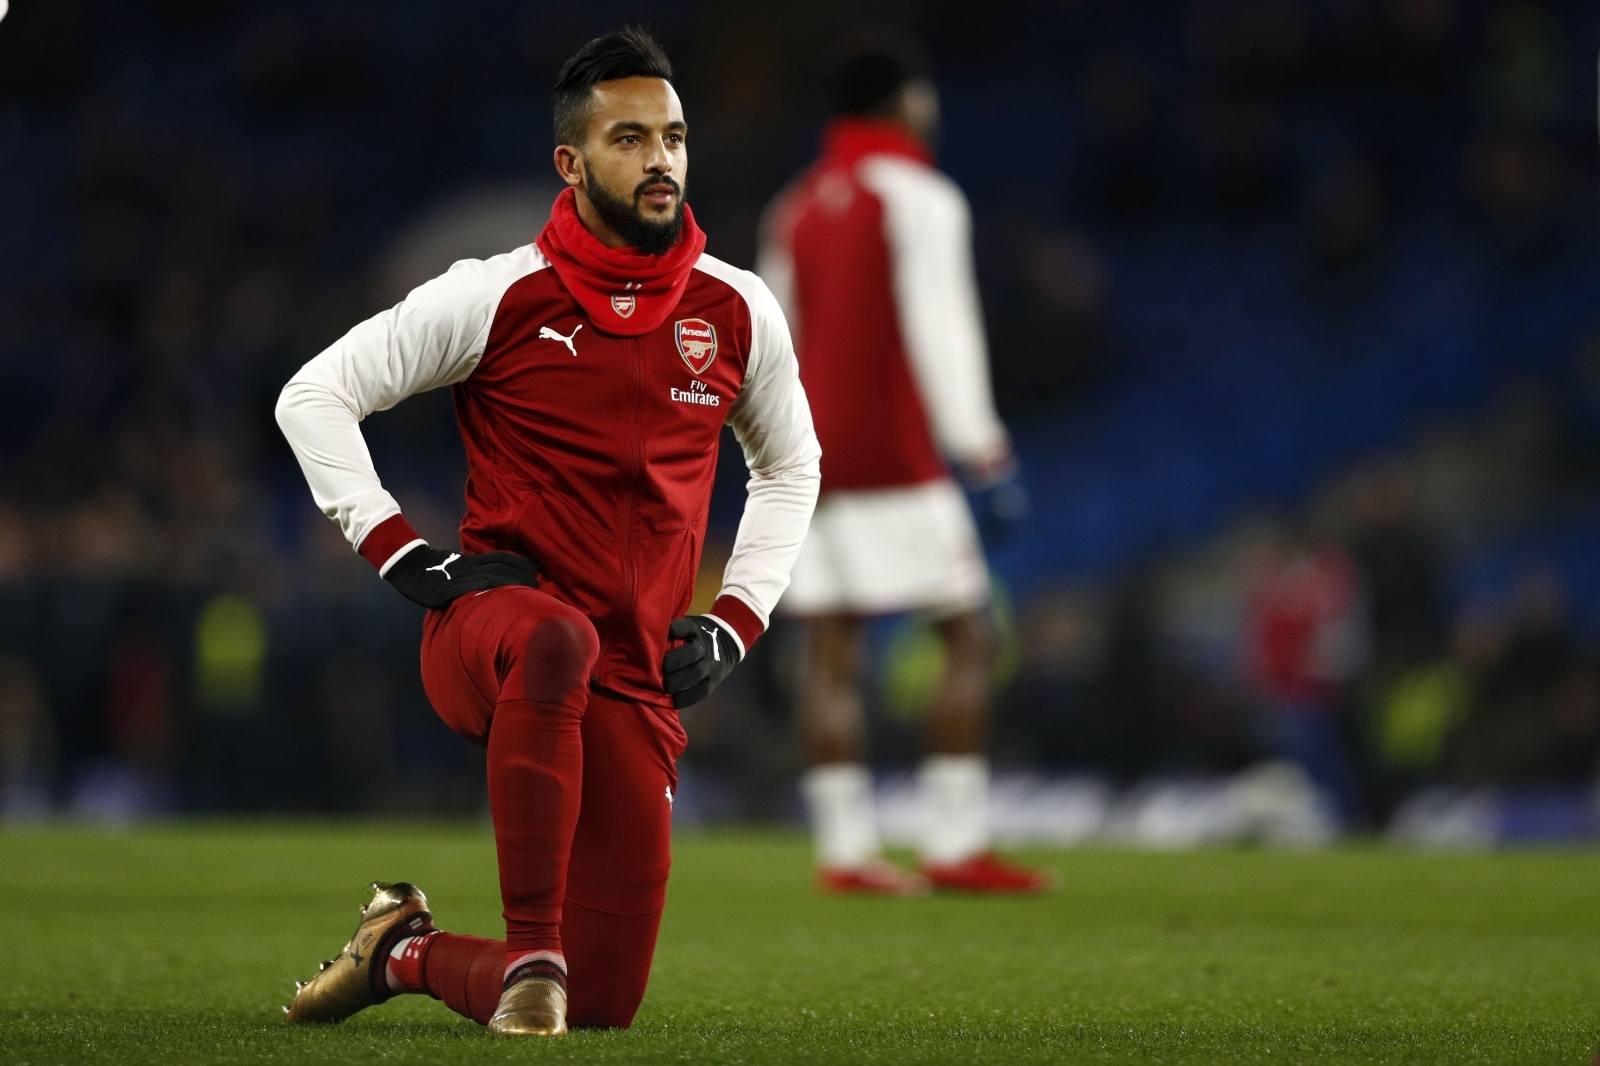 Arsene Wenger says Theo Walcott can return to Arsenal after admitting 'regret'